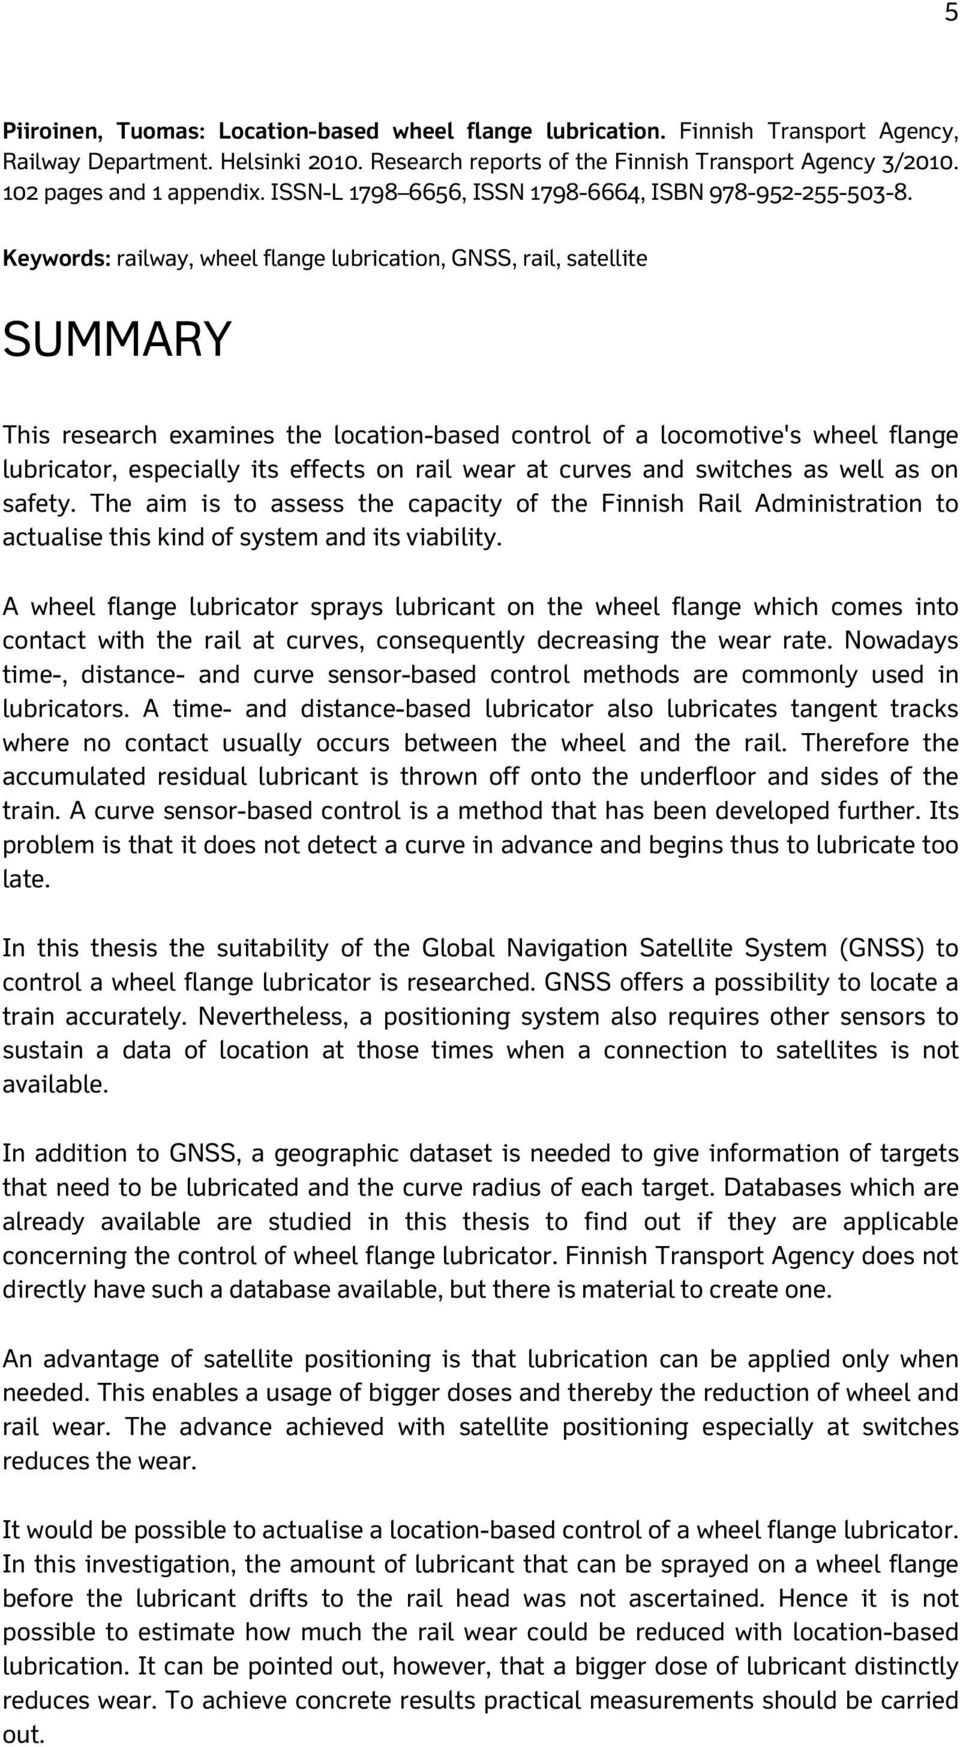 Keywords: railway, wheel flange lubrication, GNSS, rail, satellite SUMMARY This research examines the location-based control of a locomotive's wheel flange lubricator, especially its effects on rail